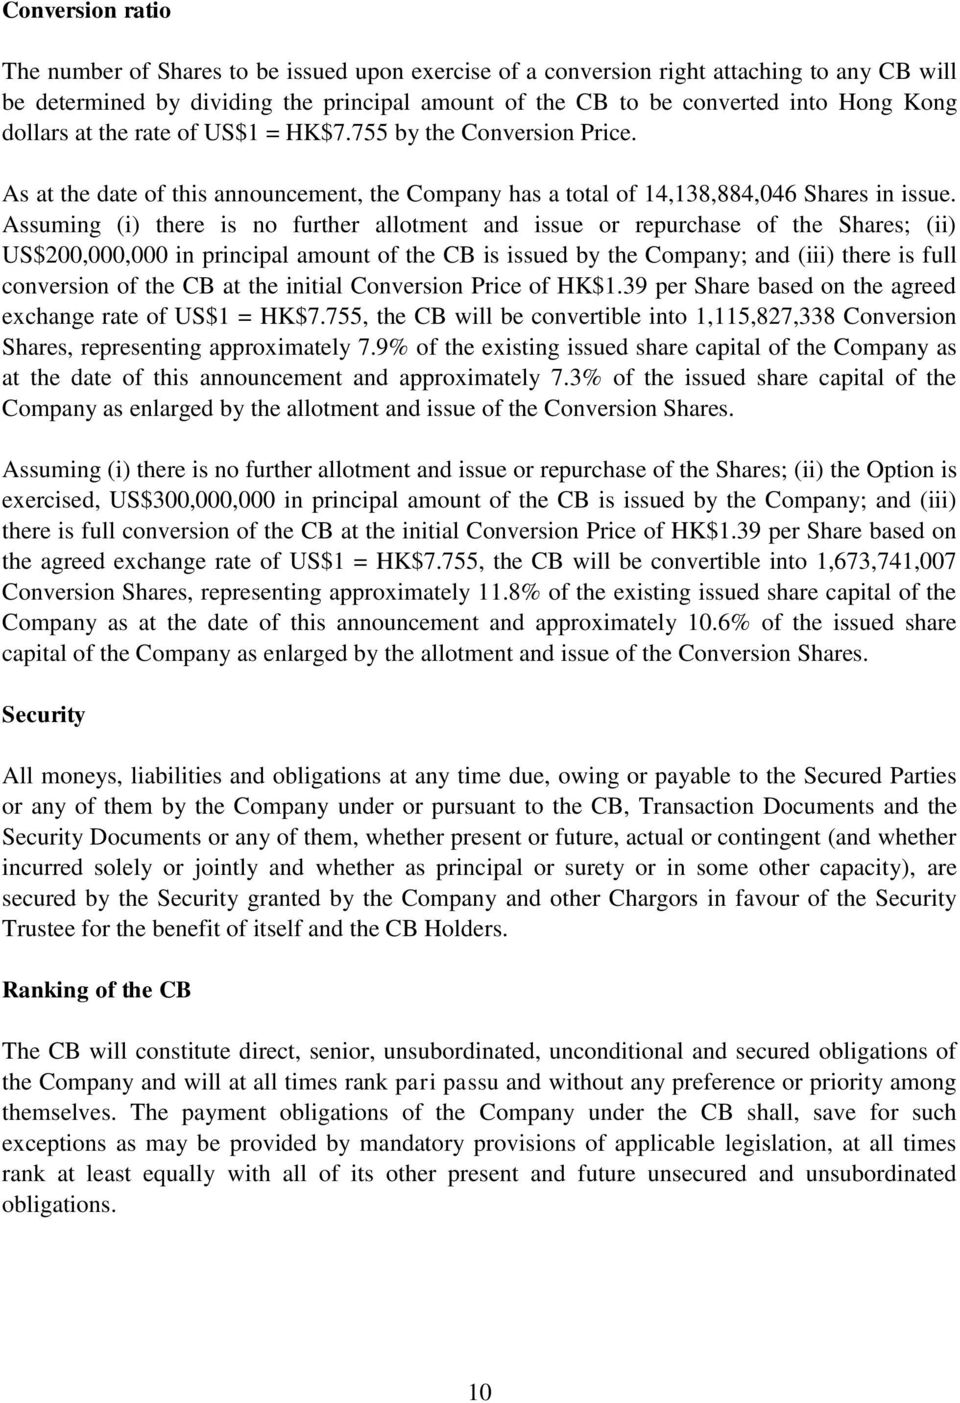 Assuming (i) there is no further allotment and issue or repurchase of the Shares; (ii) US$200,000,000 in principal amount of the CB is issued by the Company; and (iii) there is full conversion of the